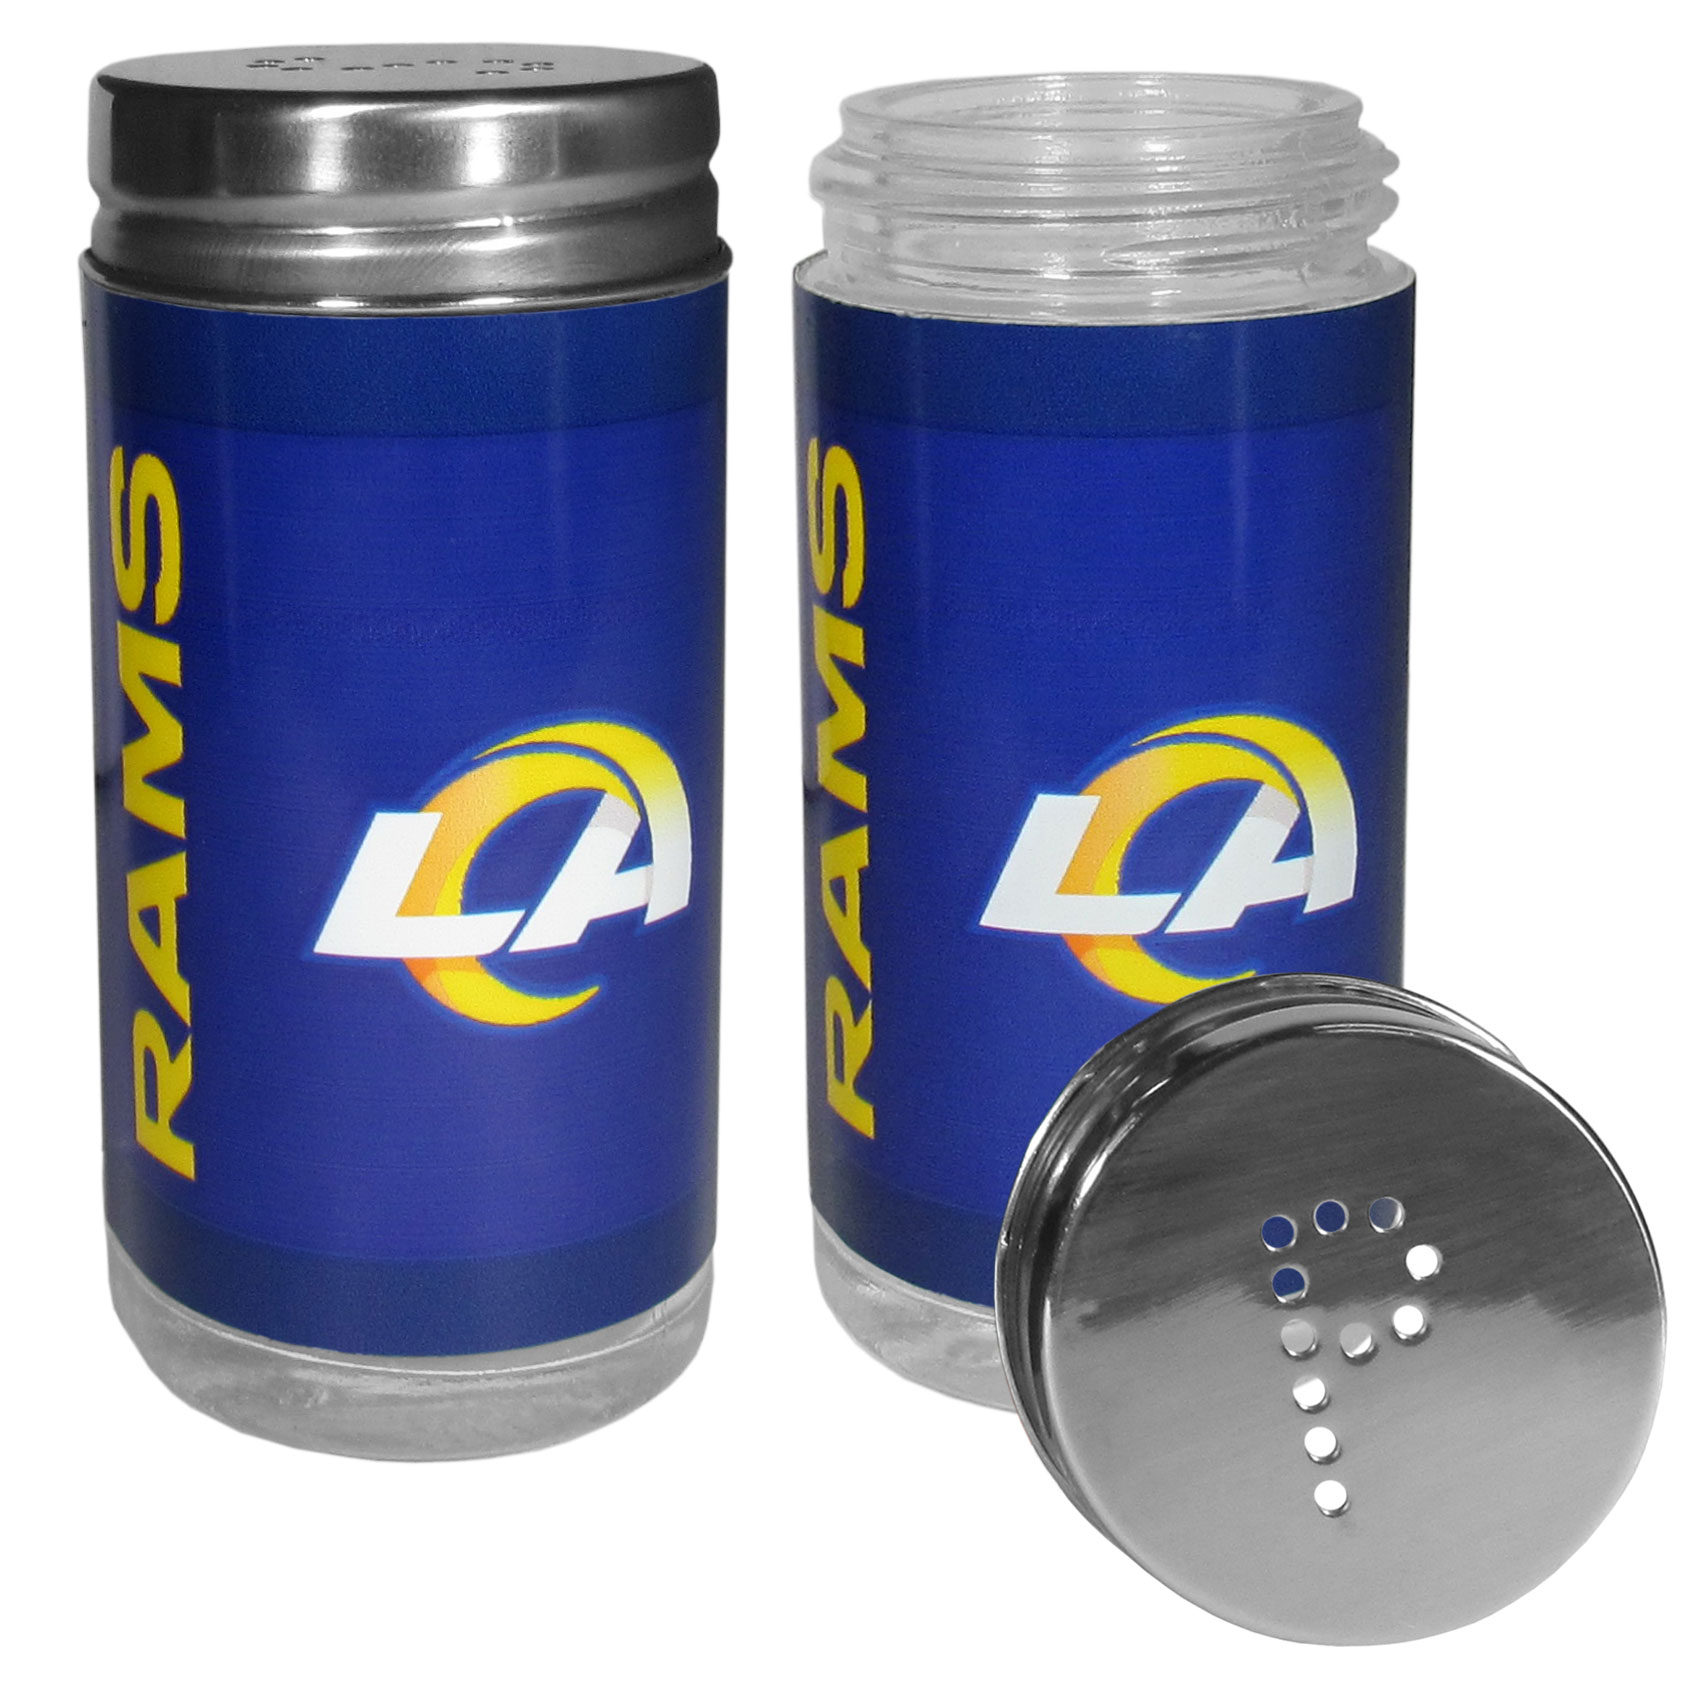 Los Angeles Rams Tailgater Salt & Pepper Shakers - No tailgate party is complete without your Los Angeles Rams salt & pepper shakers featuring bright team graphics. The glass shakers are 3.75 inches tall and the screw top lids have holes that spell out P and S. These team shakers are a great grill accessory whether you are barbecuing on the patio, picnicing or having a game day party.